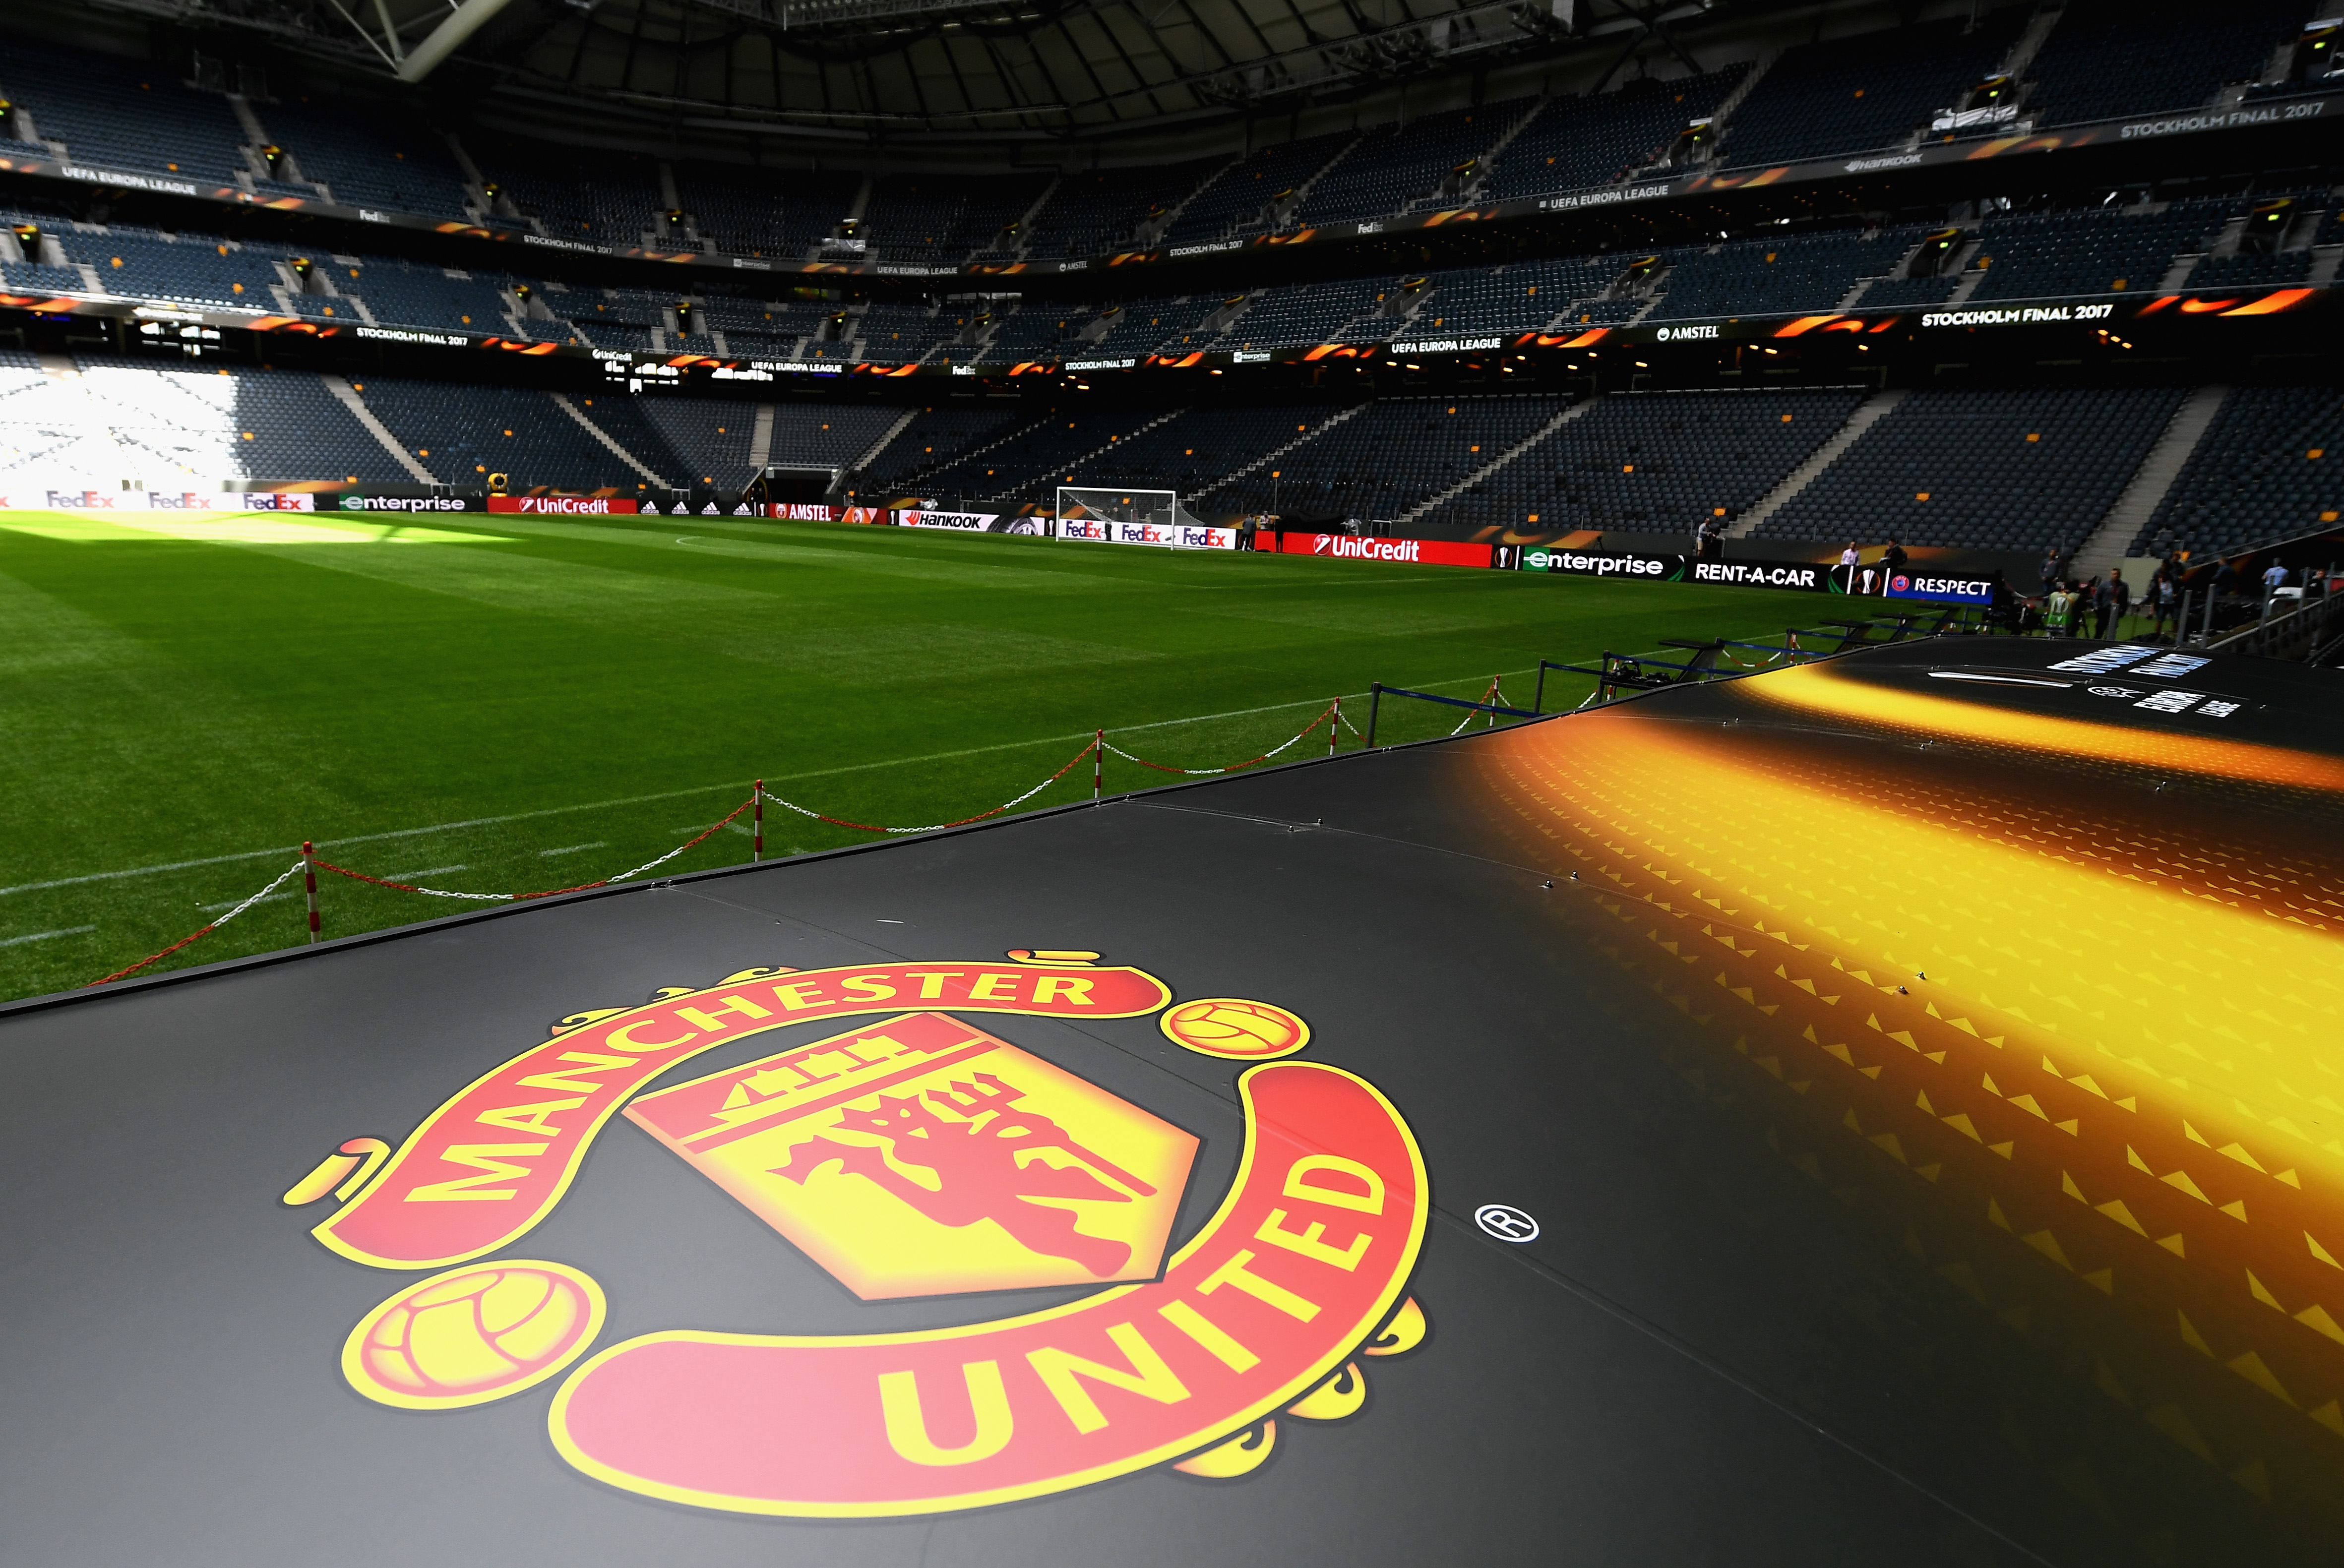 Friends Arena Europa League final Manchester United